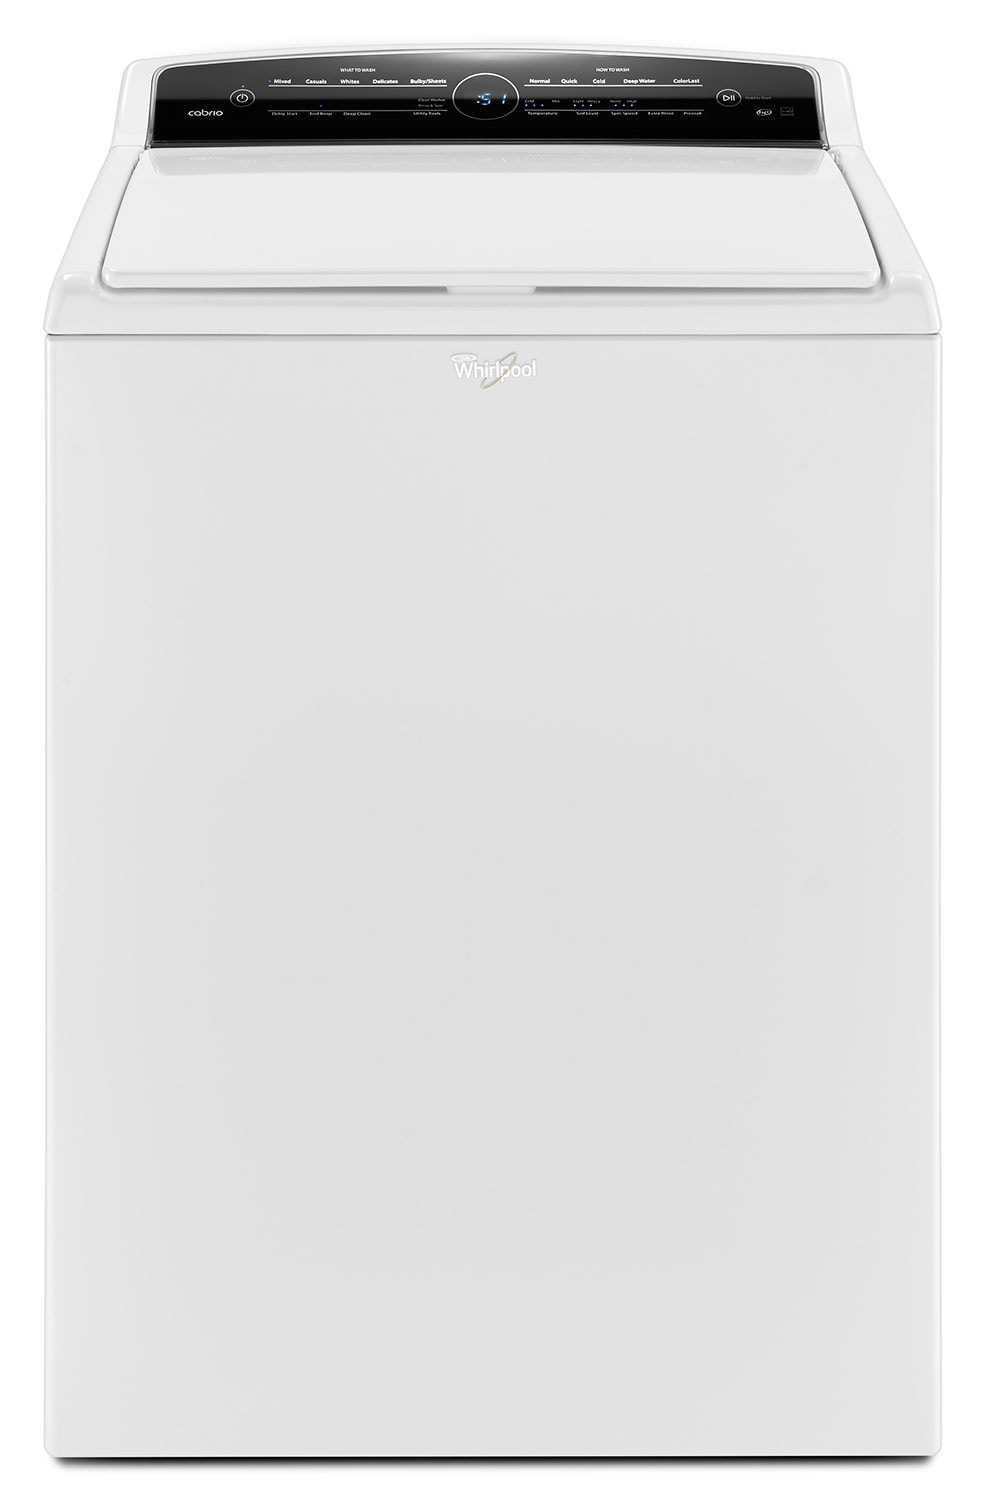 Washers and Dryers - Whirlpool® 5.5 Cu. Ft. Cabrio® High-Efficiency Top-Load Washer – White